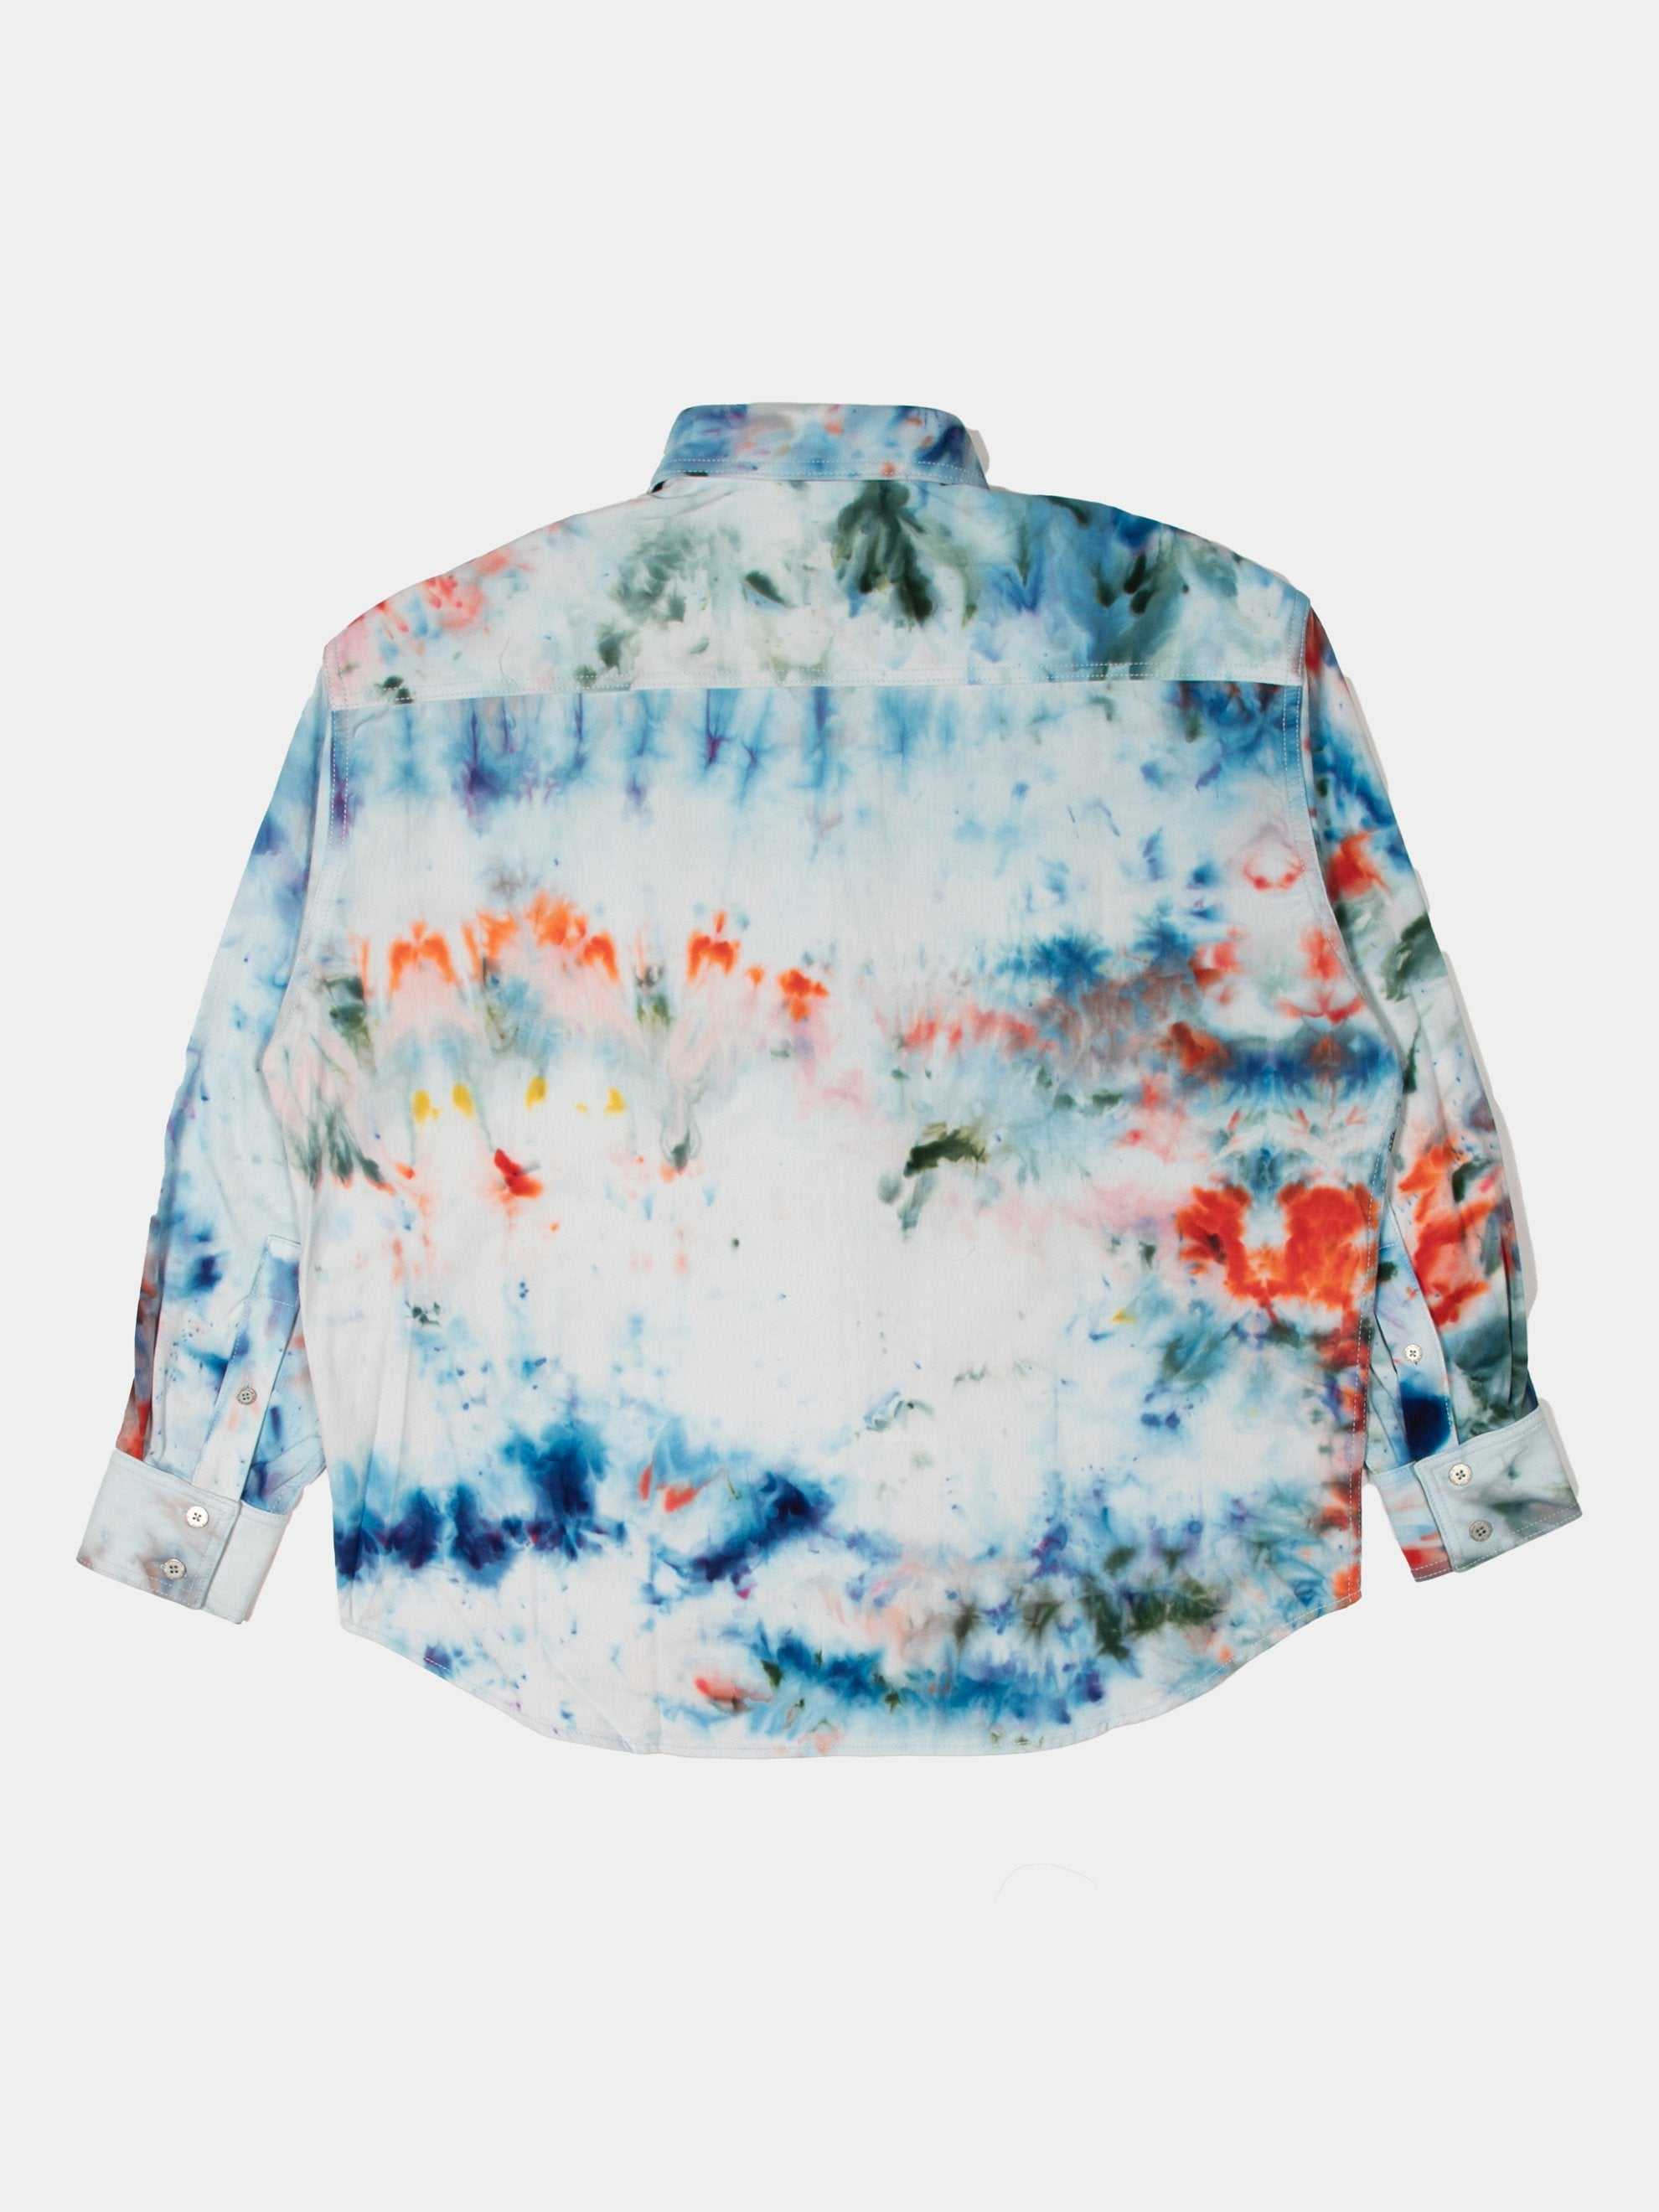 Turquoise/Red/Blue HAND-DYED TRB SOTO OS LS BD SHIRT 2